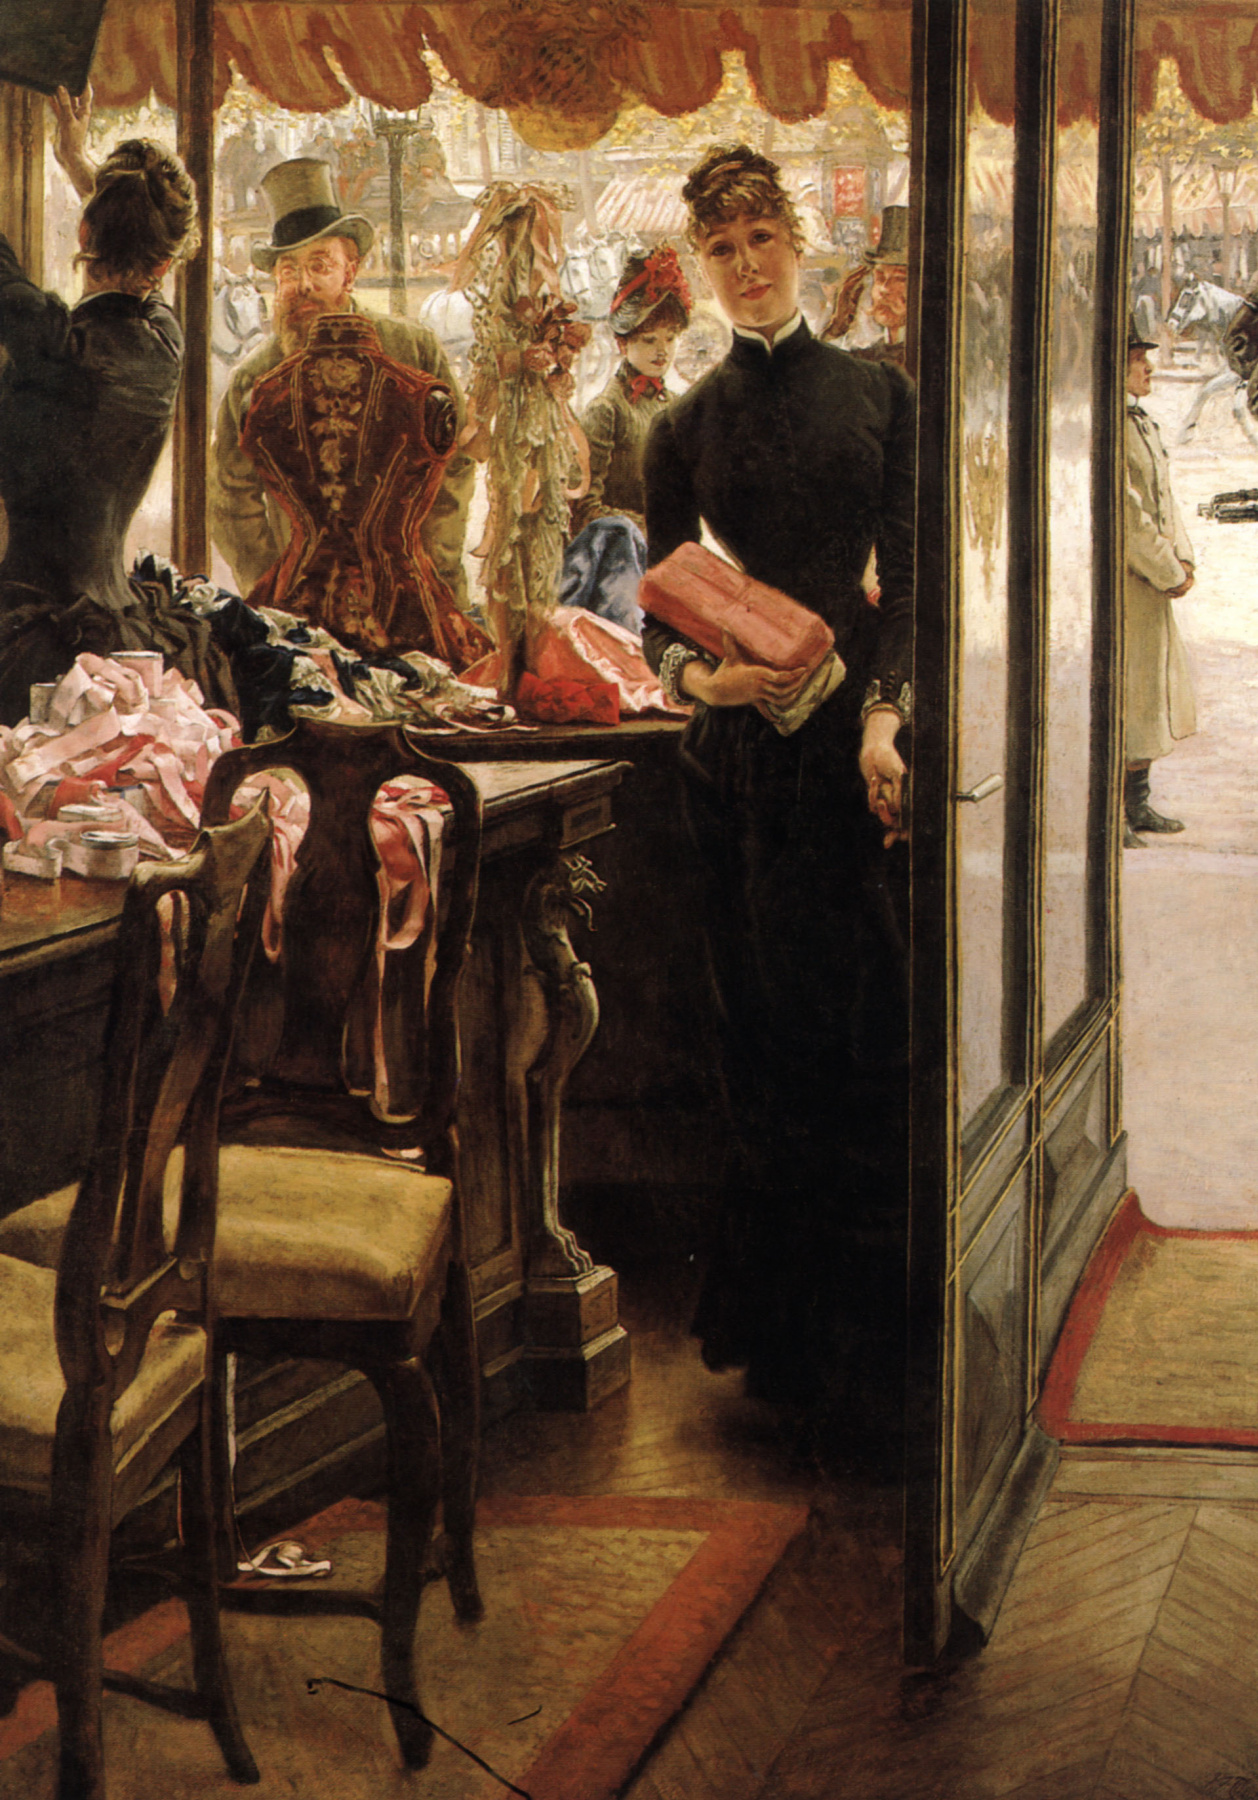 James Tissot. The girl in the shop